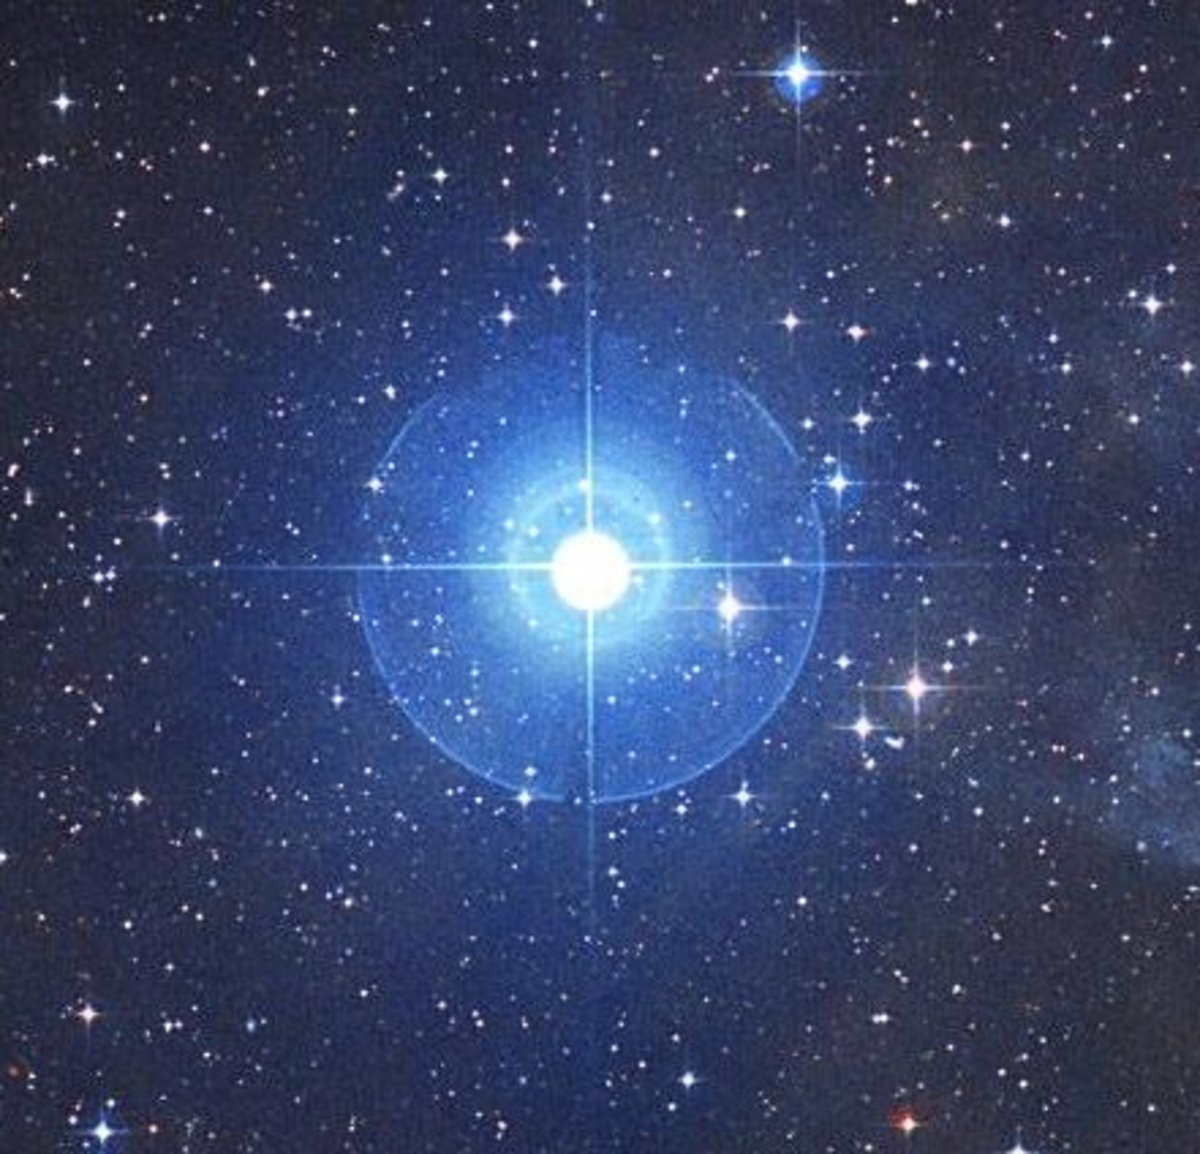 A close-up of the blue giant star, Rigel. It is 78 times larger than the Sun.